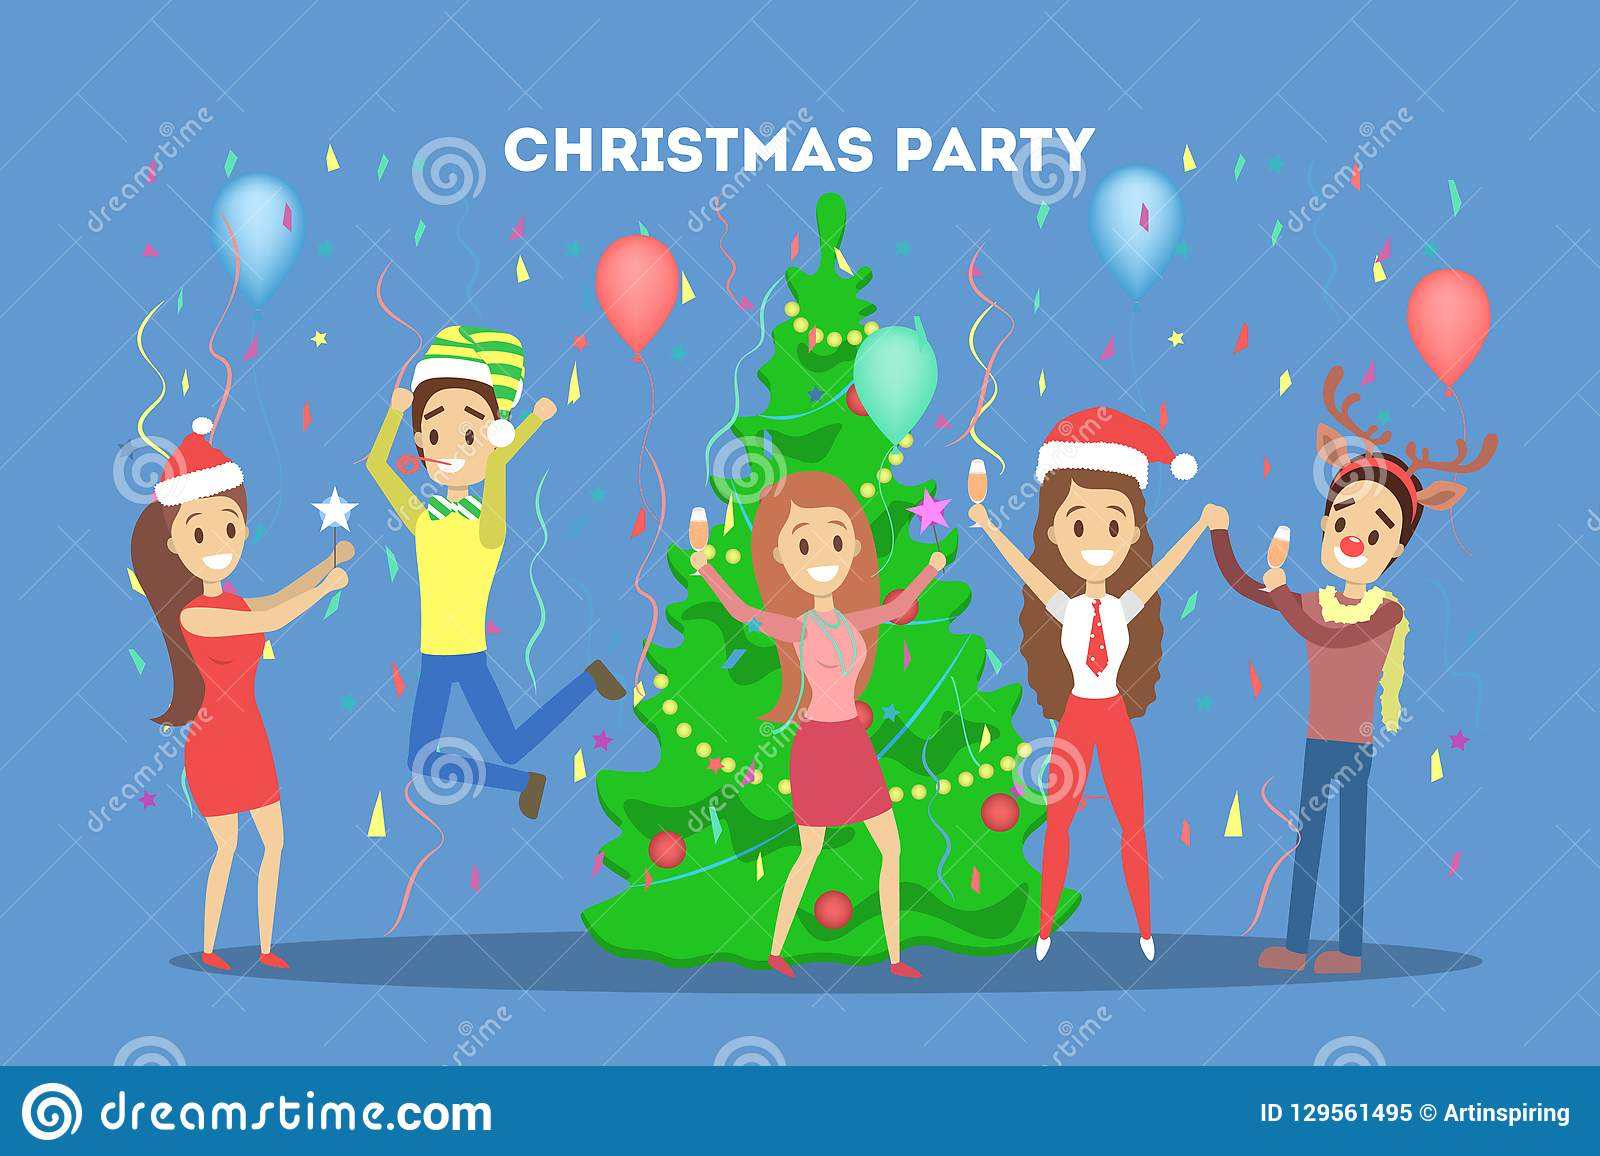 Office Christmas Party Stock Illustrations 4 347 Office Christmas Party Stock Illustrations Vectors Clipart Dreamstime